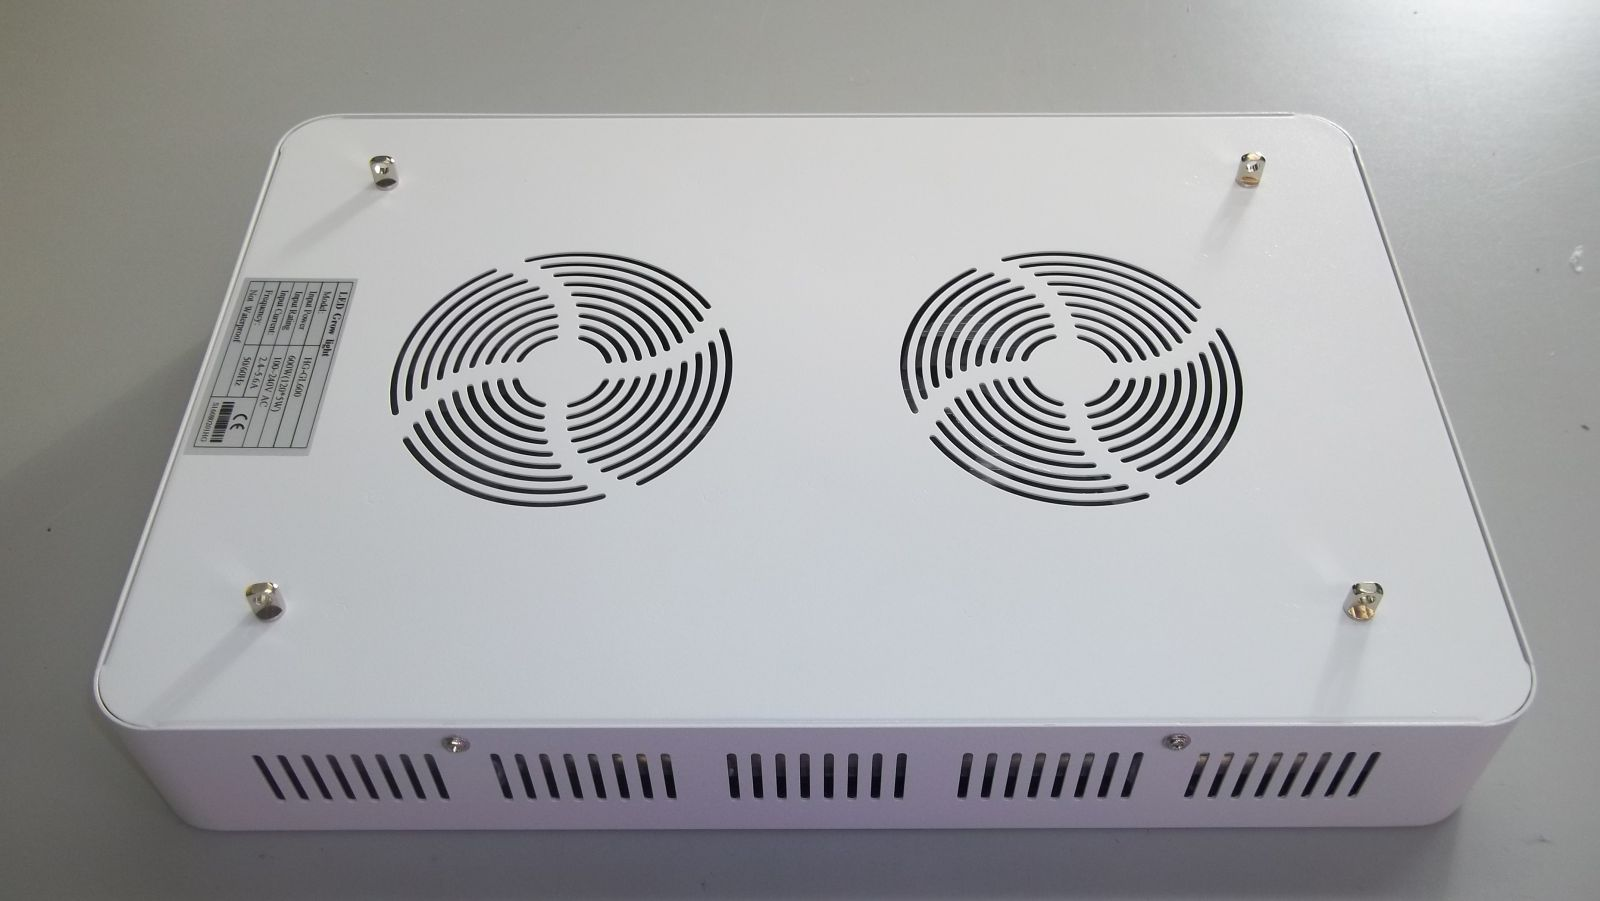 higrow 600 watt led grow light fans